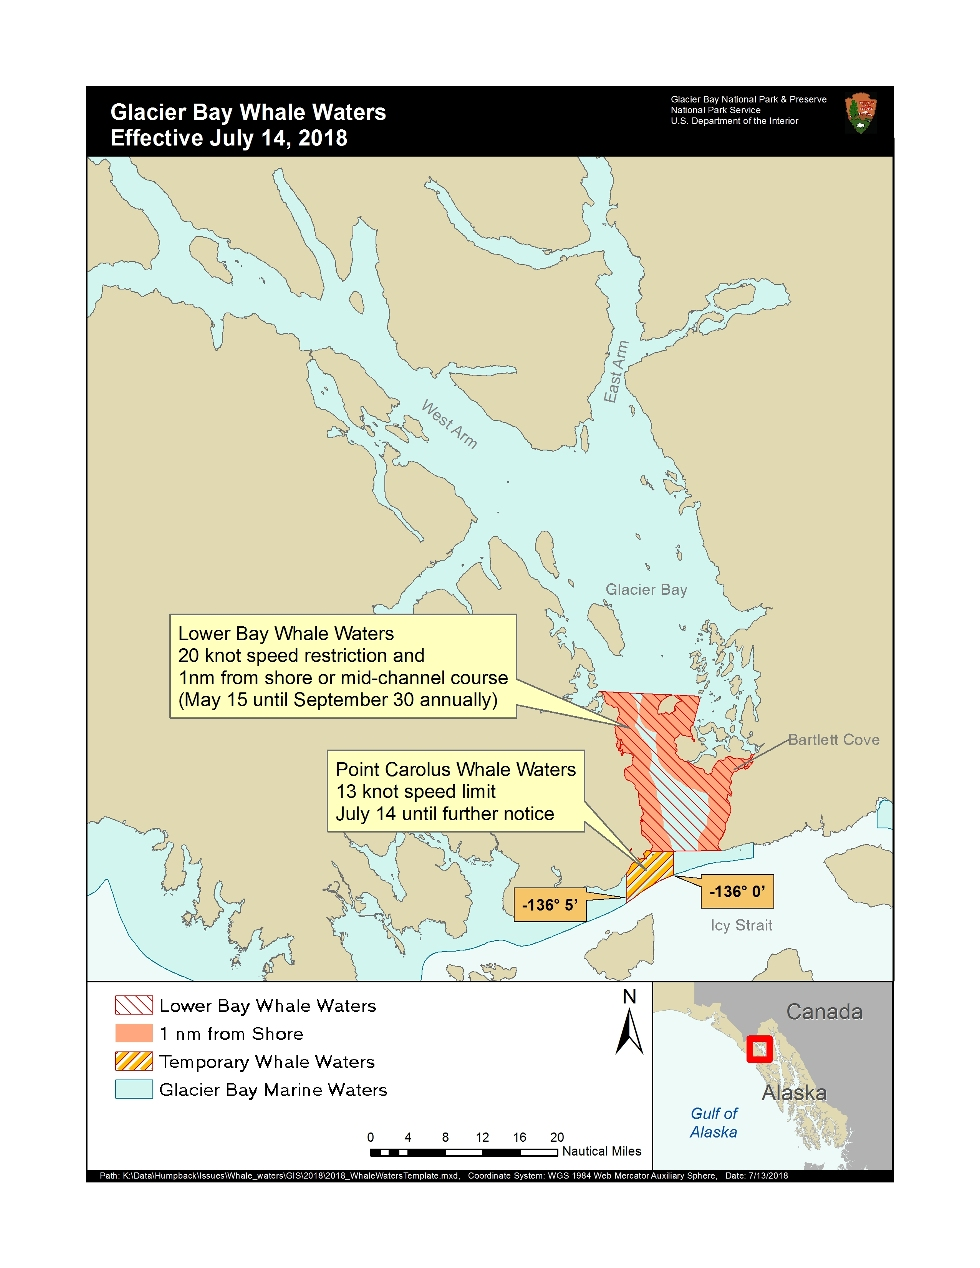 map depicting a 13 knot speed restriction around Point Carolus in Glacier Bay NP, map of whale waters for July 14 2018